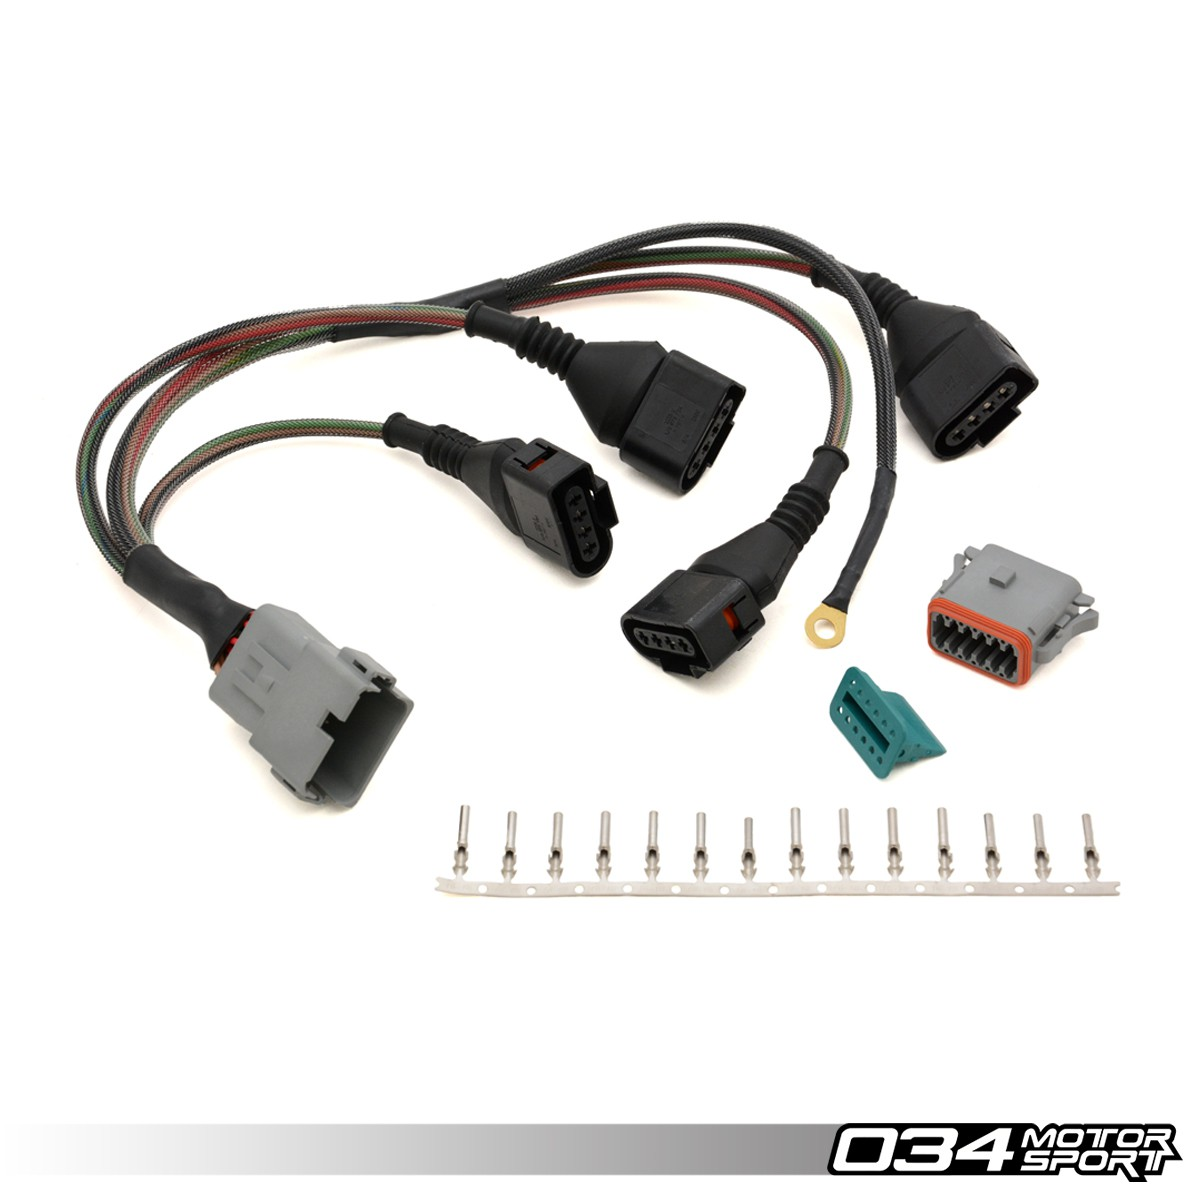 repair update harness audi volkswagen 1 8t with 4 wire coils 034 rh store 034motorsport com vw wiring harness connectors Trailer Wiring Harness Connectors